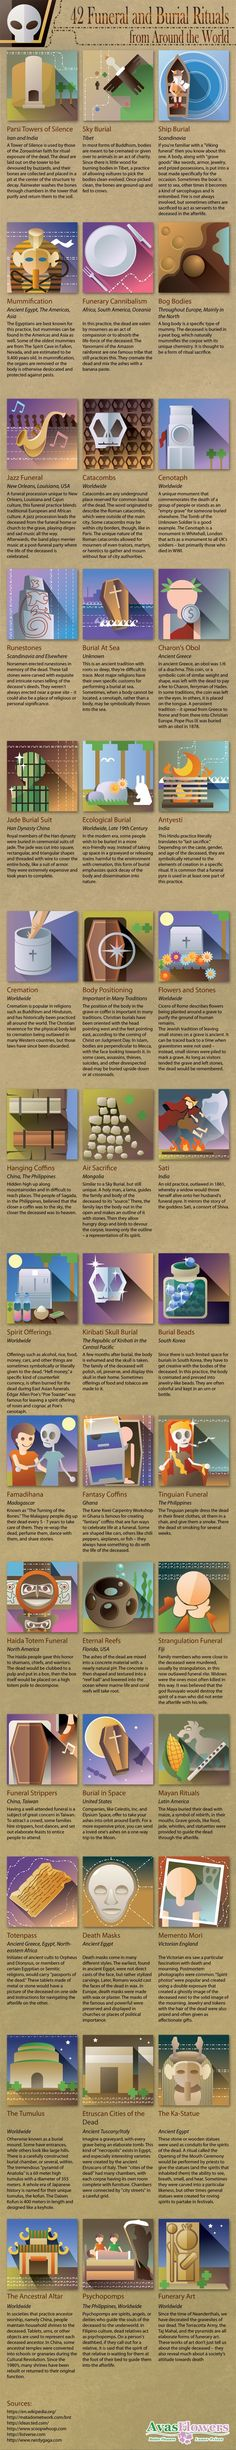 "Infographic: ""42 Funeral and Burial Rituals from Around the World"""